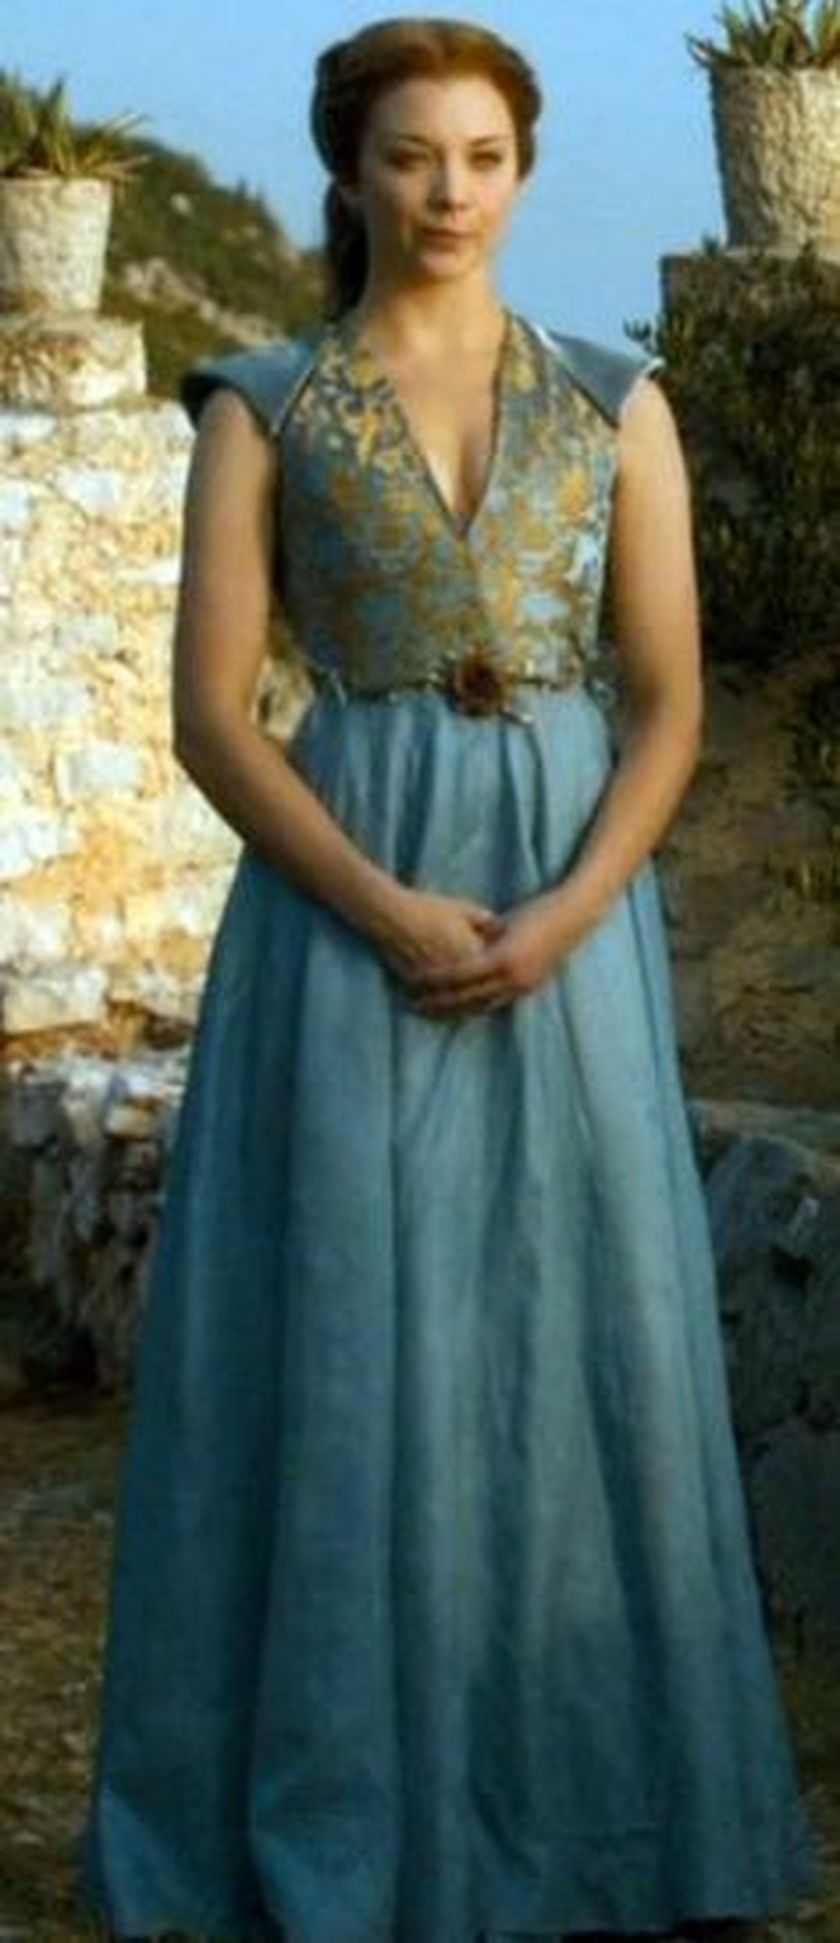 Margaery tyrell game of thrones dress costume 14